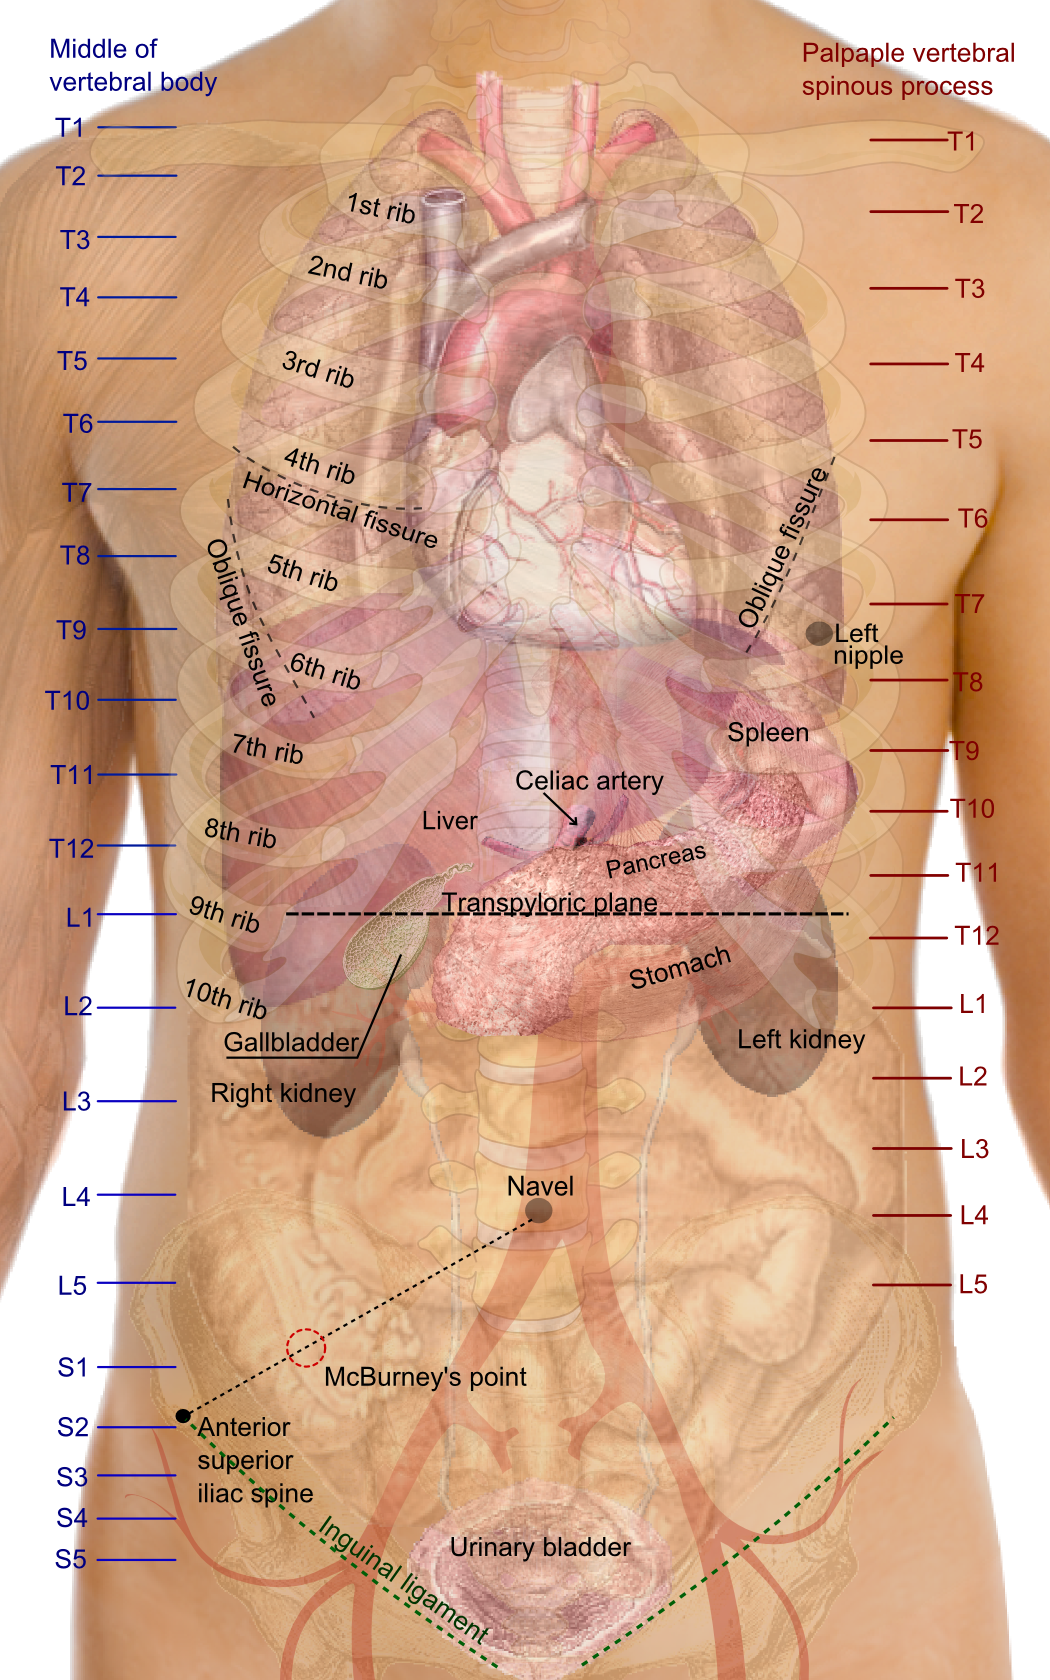 diagram of the anatomy best 25+ anatomy organs ideas on pinterest | anatomy ... diagram of the earth relative to the sun #2